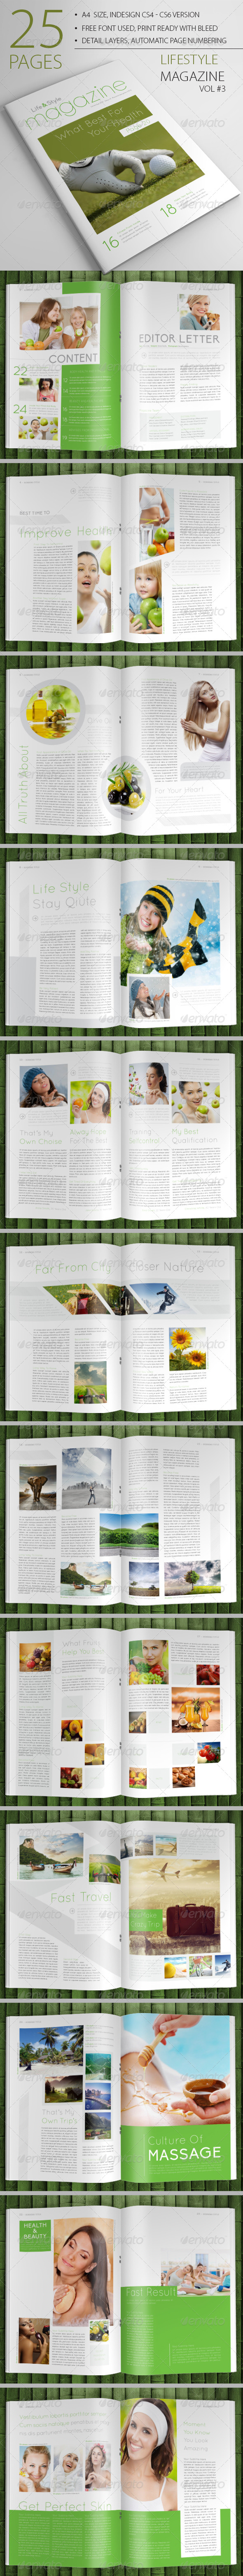 GraphicRiver 25 Pages Lifestyle Magazine Vol3 6643112